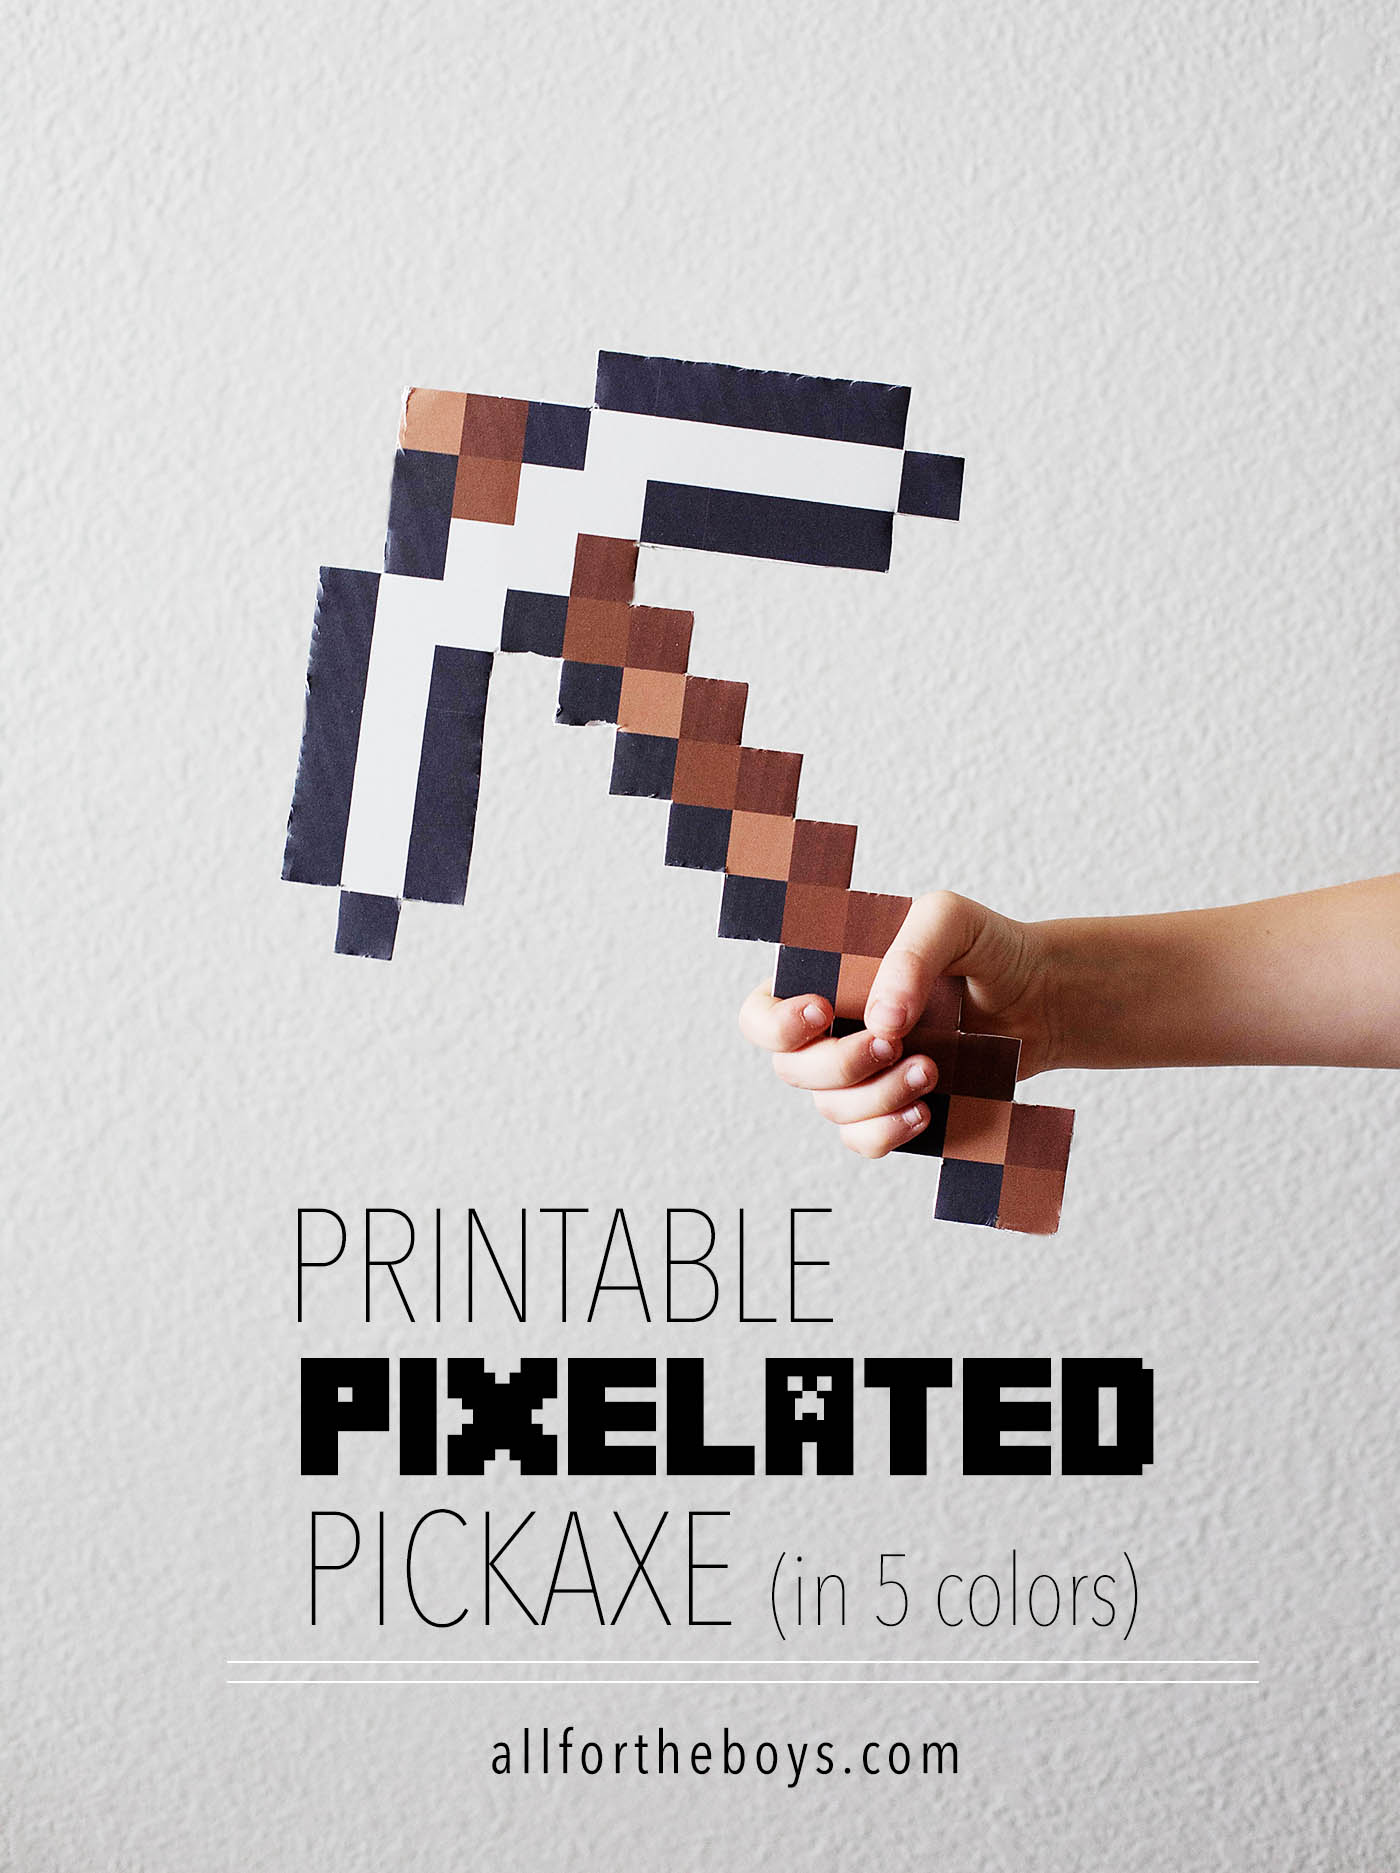 Printable Pixelated Pickaxe